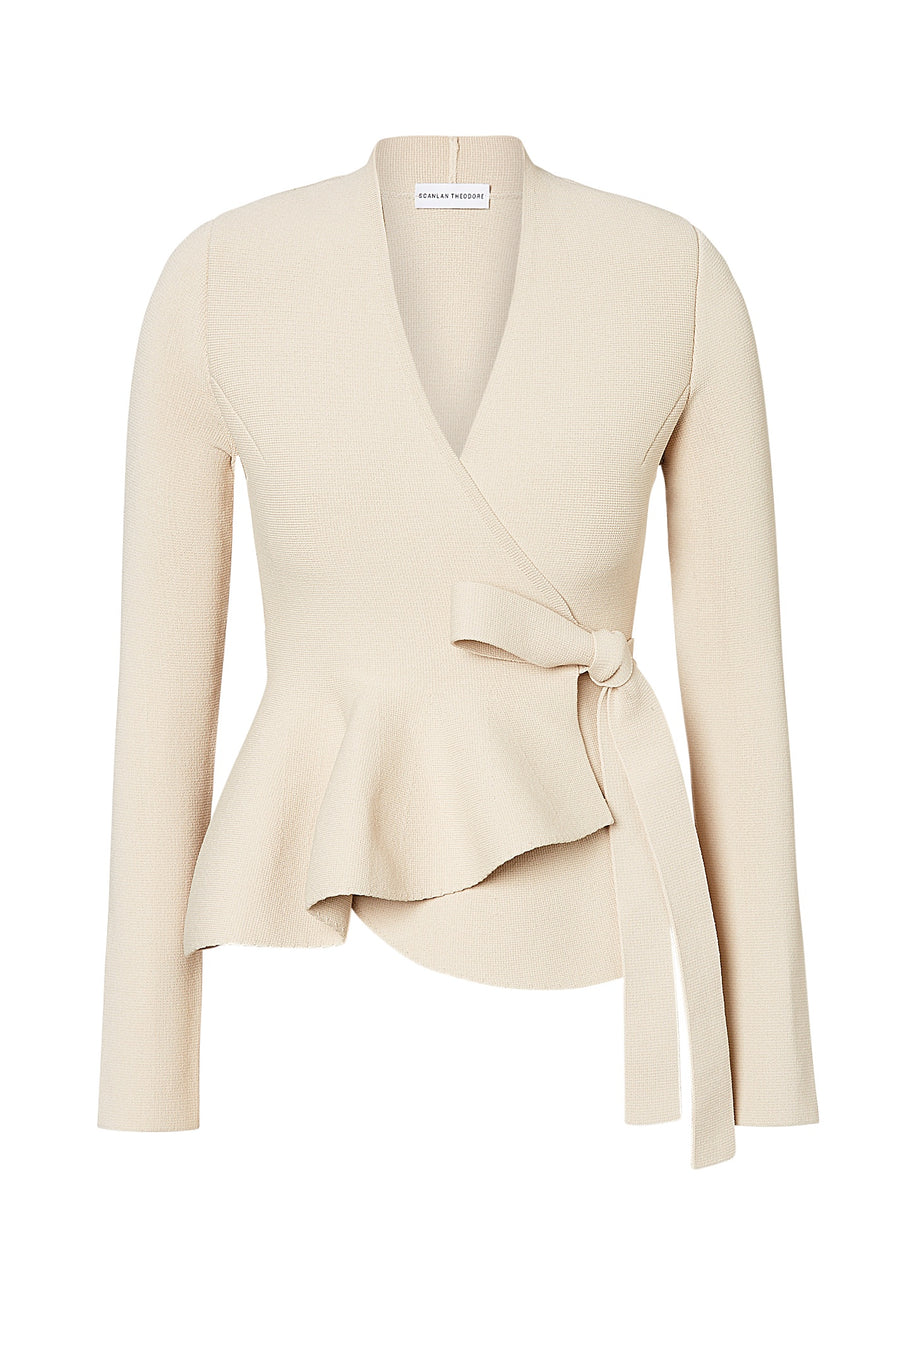 CREPE KNIT WRAP JACKET